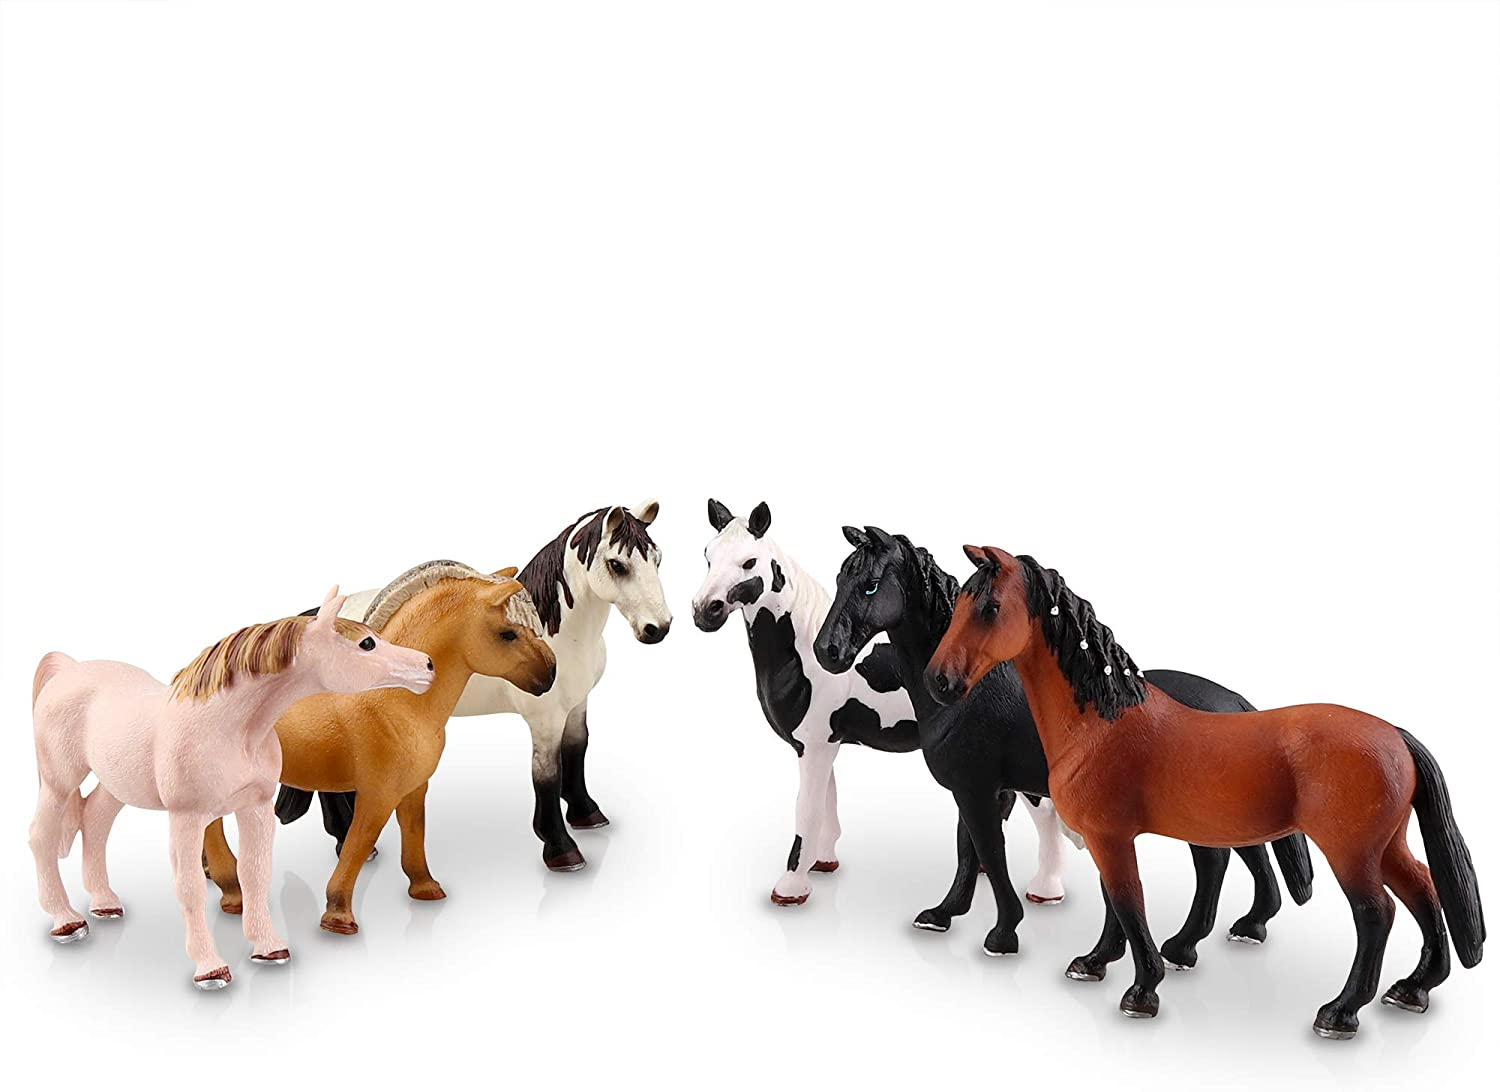 """TOYMANY 9PCS 9"""" Realistic Plastic Large Horse Figurines Set, Detailed  Textures Foal Pony Animal Toy Figures, Christmas Birthday Gift Decoration  for"""